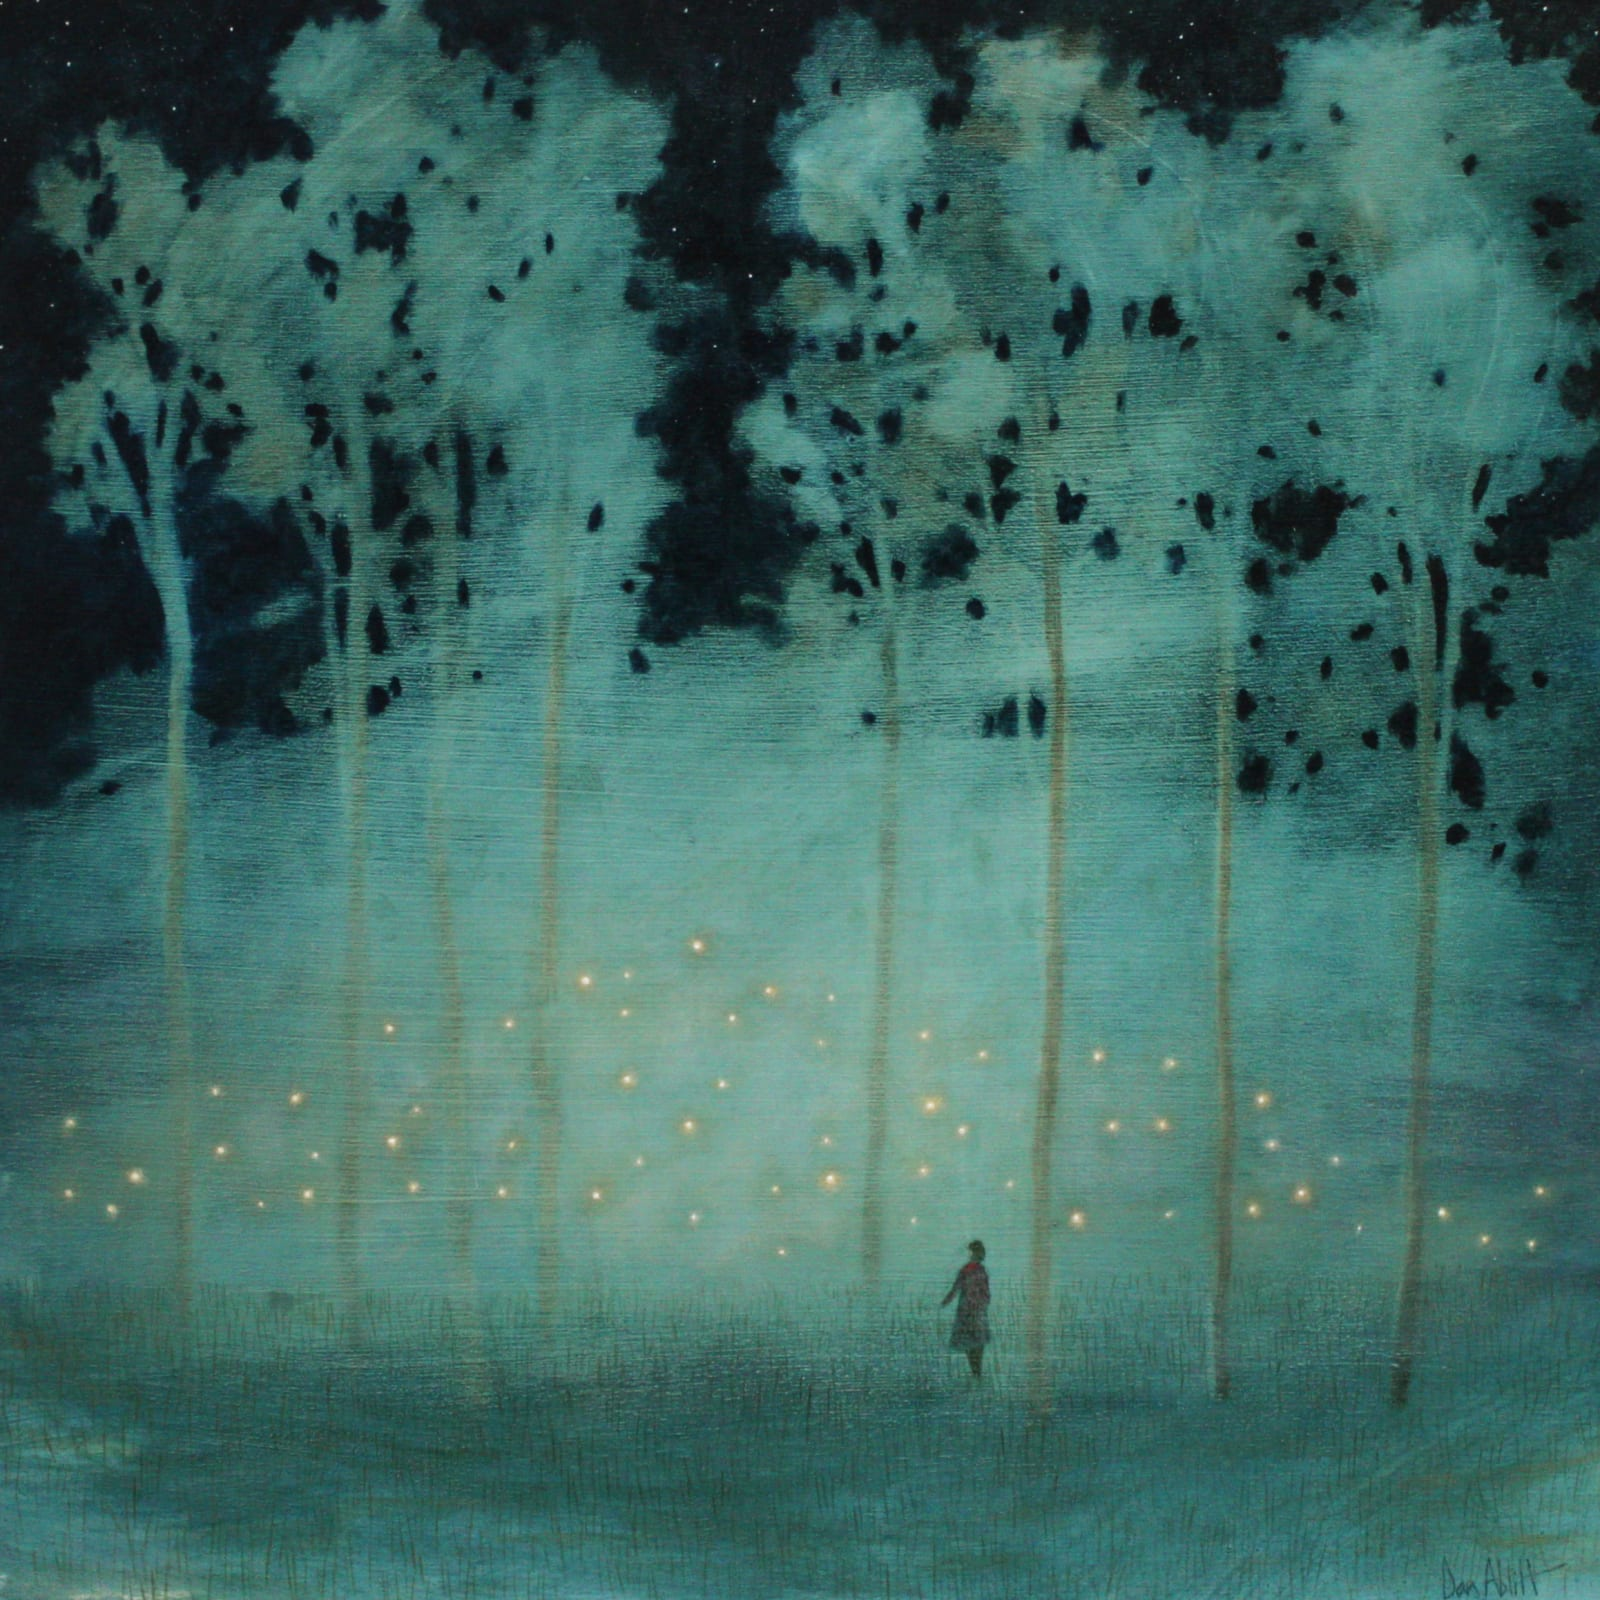 Daniel Ablitt, Lights in the Mist II